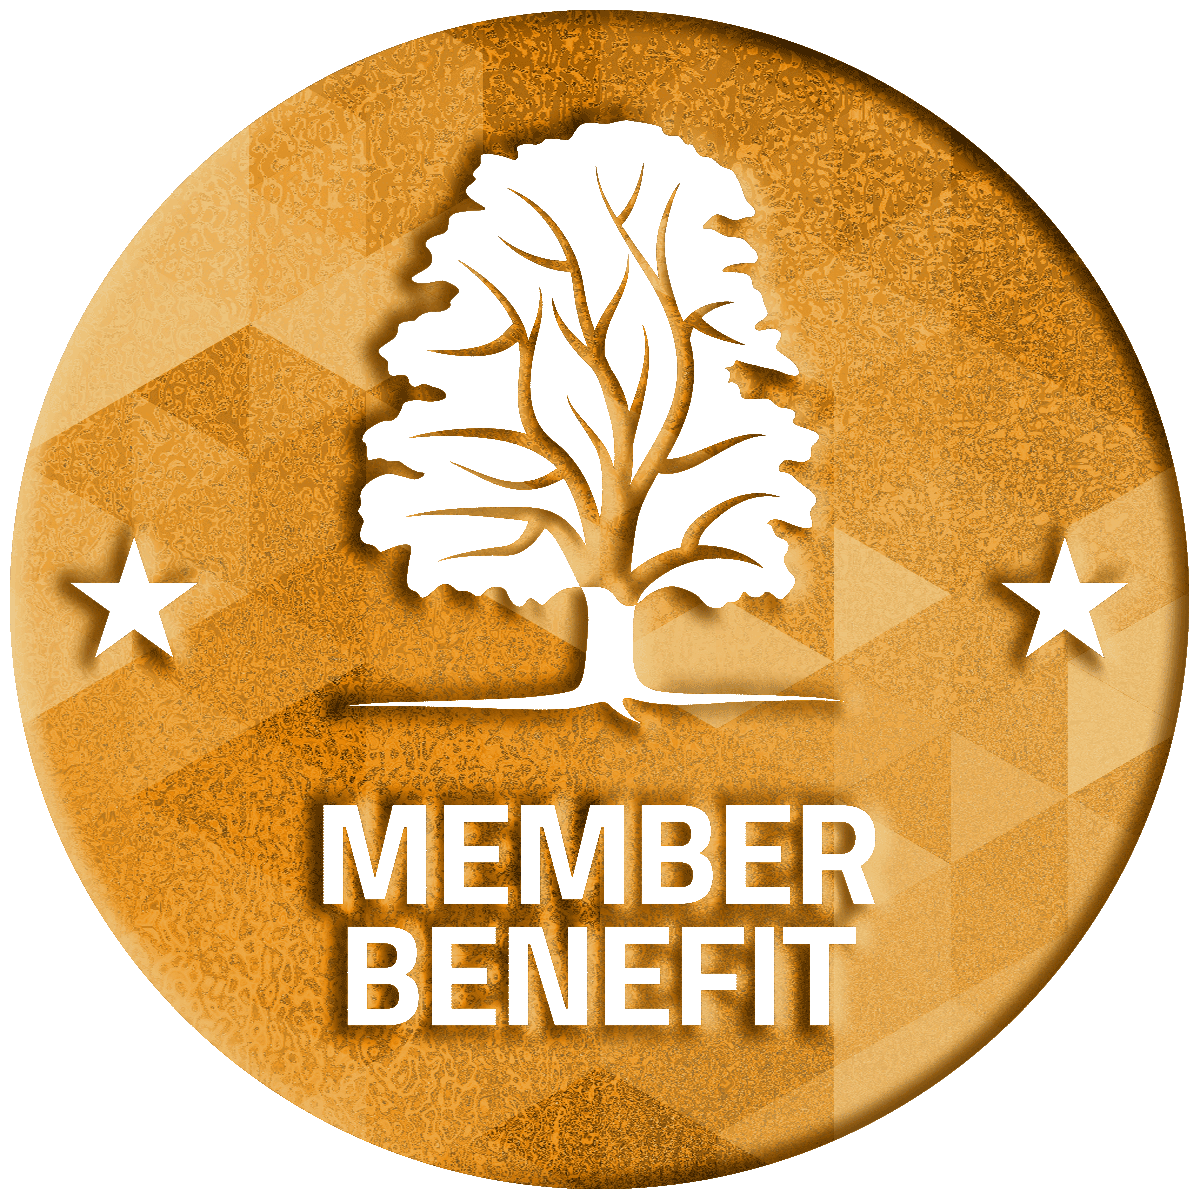 An Arboricultural Association Member Benefit